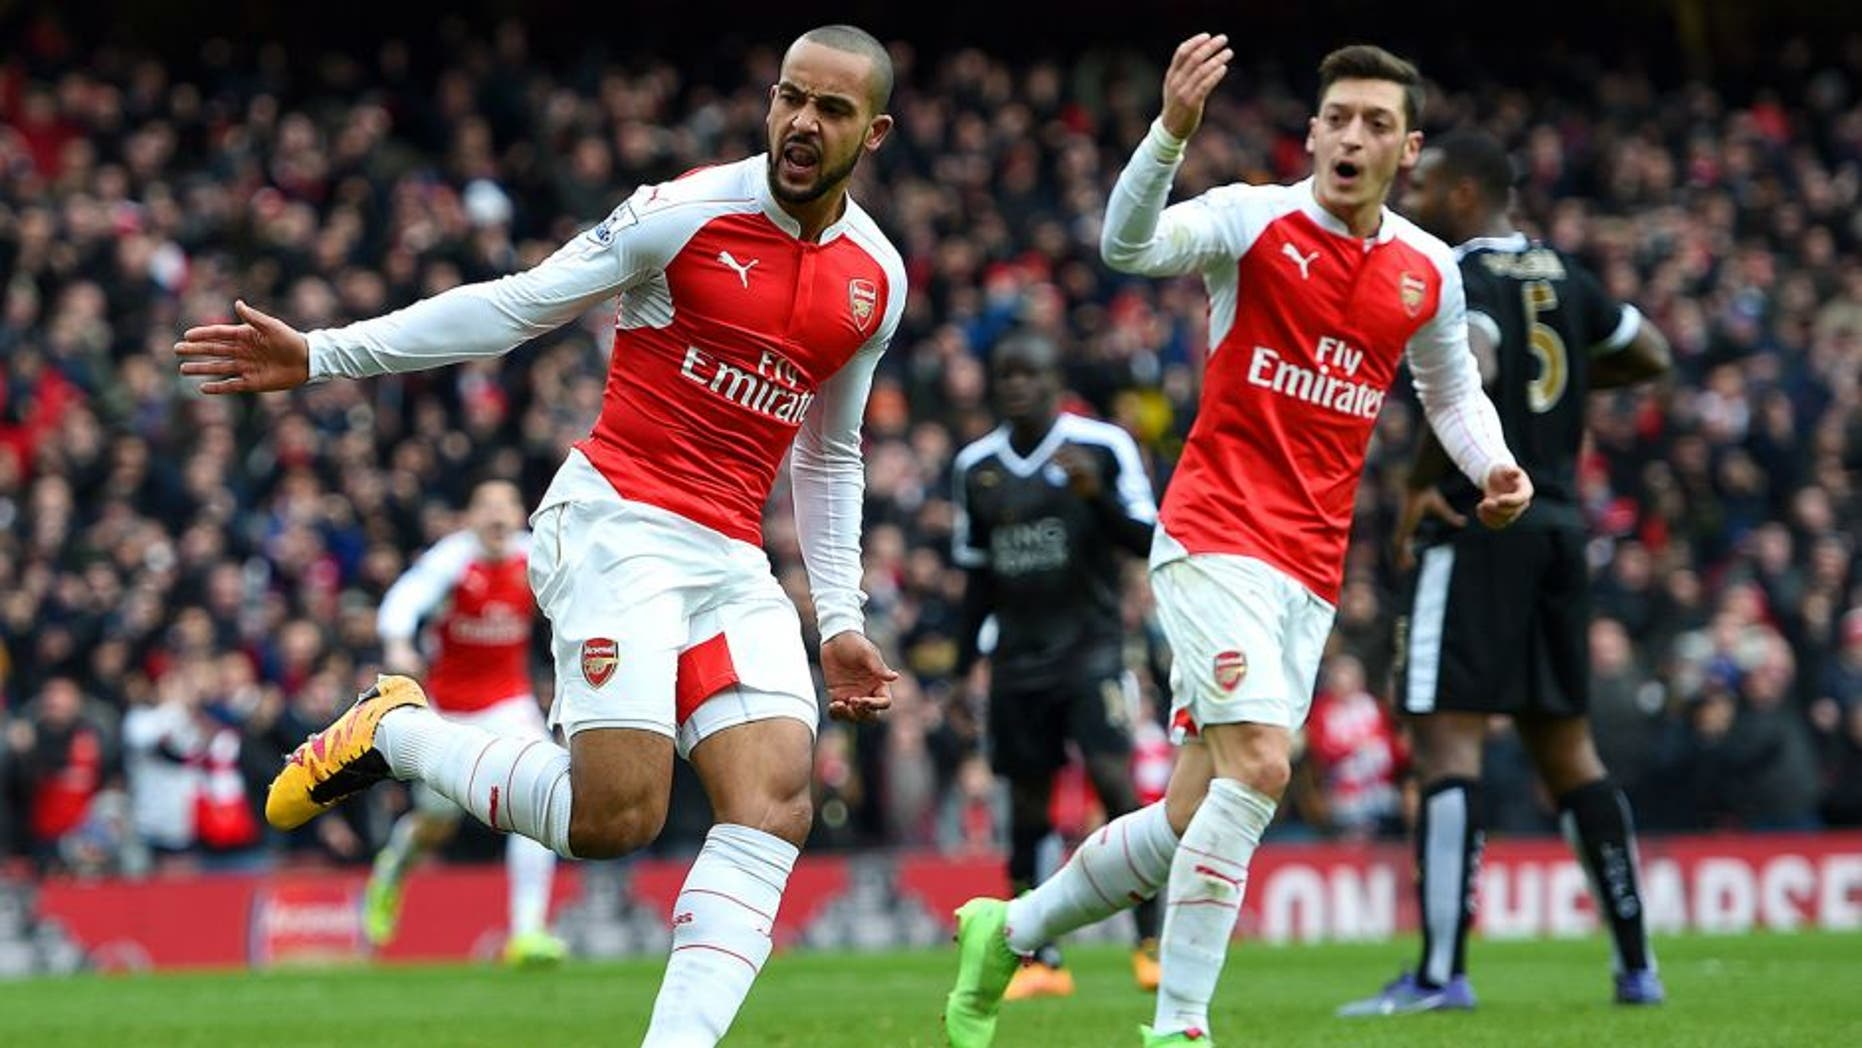 LONDON, ENGLAND - FEBRUARY 14: Theo Walcott of Arsenal celebrates after scoring his team's first goal during the Barclays Premier League match between Arsenal and Leicester City at Emirates Stadium on February 14, 2016 in London, England. (Photo by Ross Kinnaird/Getty Images)